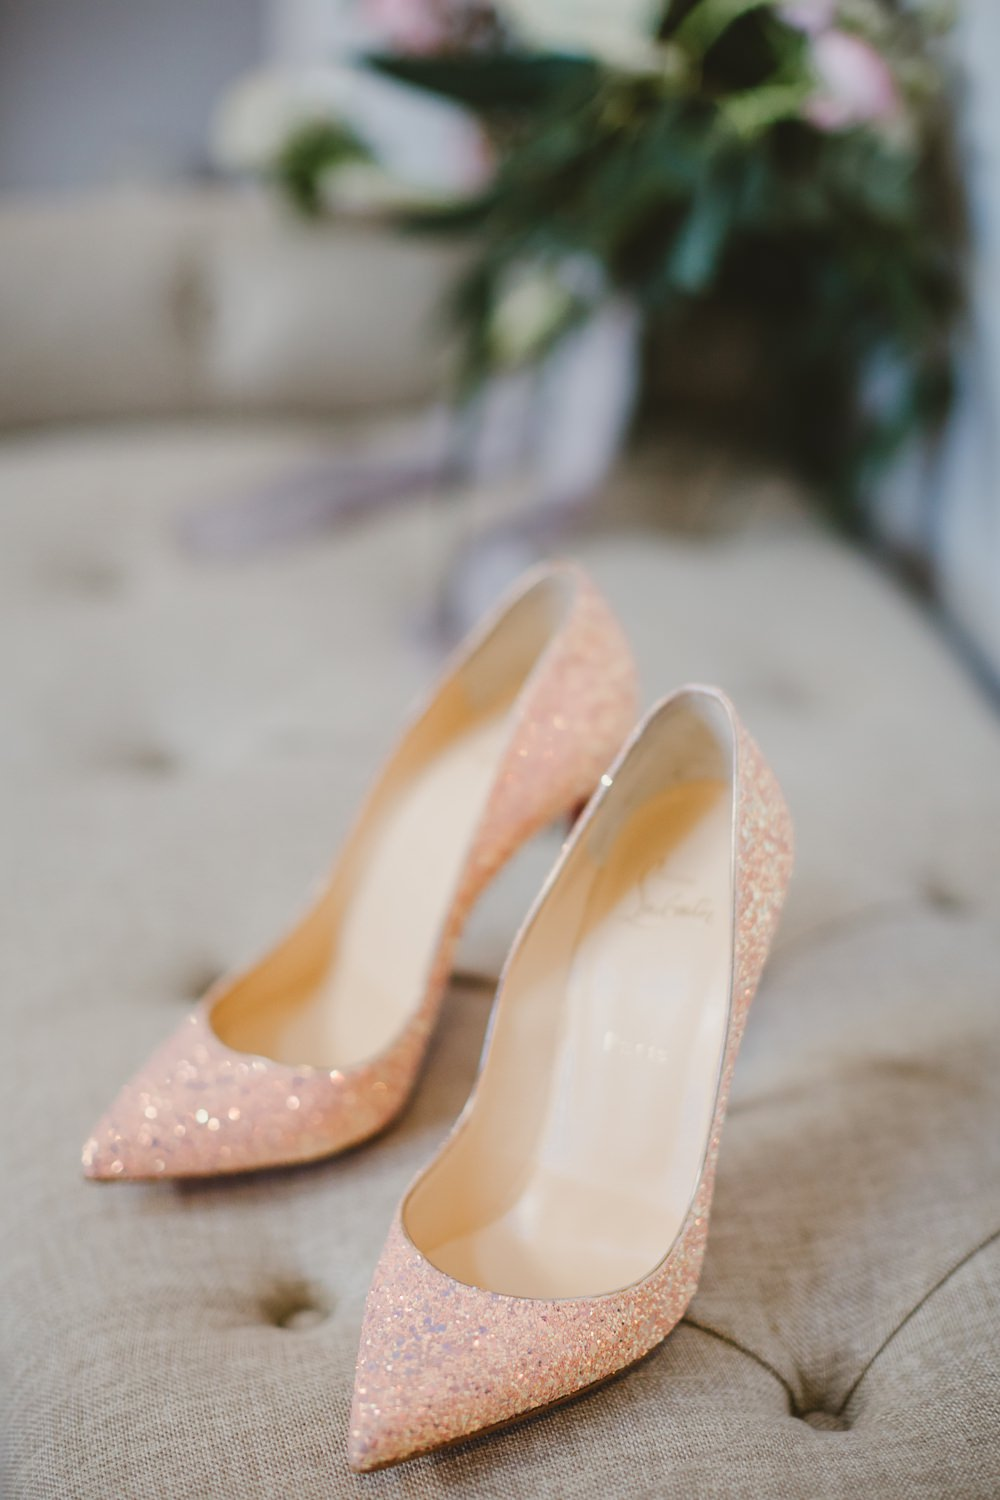 Louboutin Shoes Bride Bridal Pink Glitter York Minster Wedding Amy Lou Photography